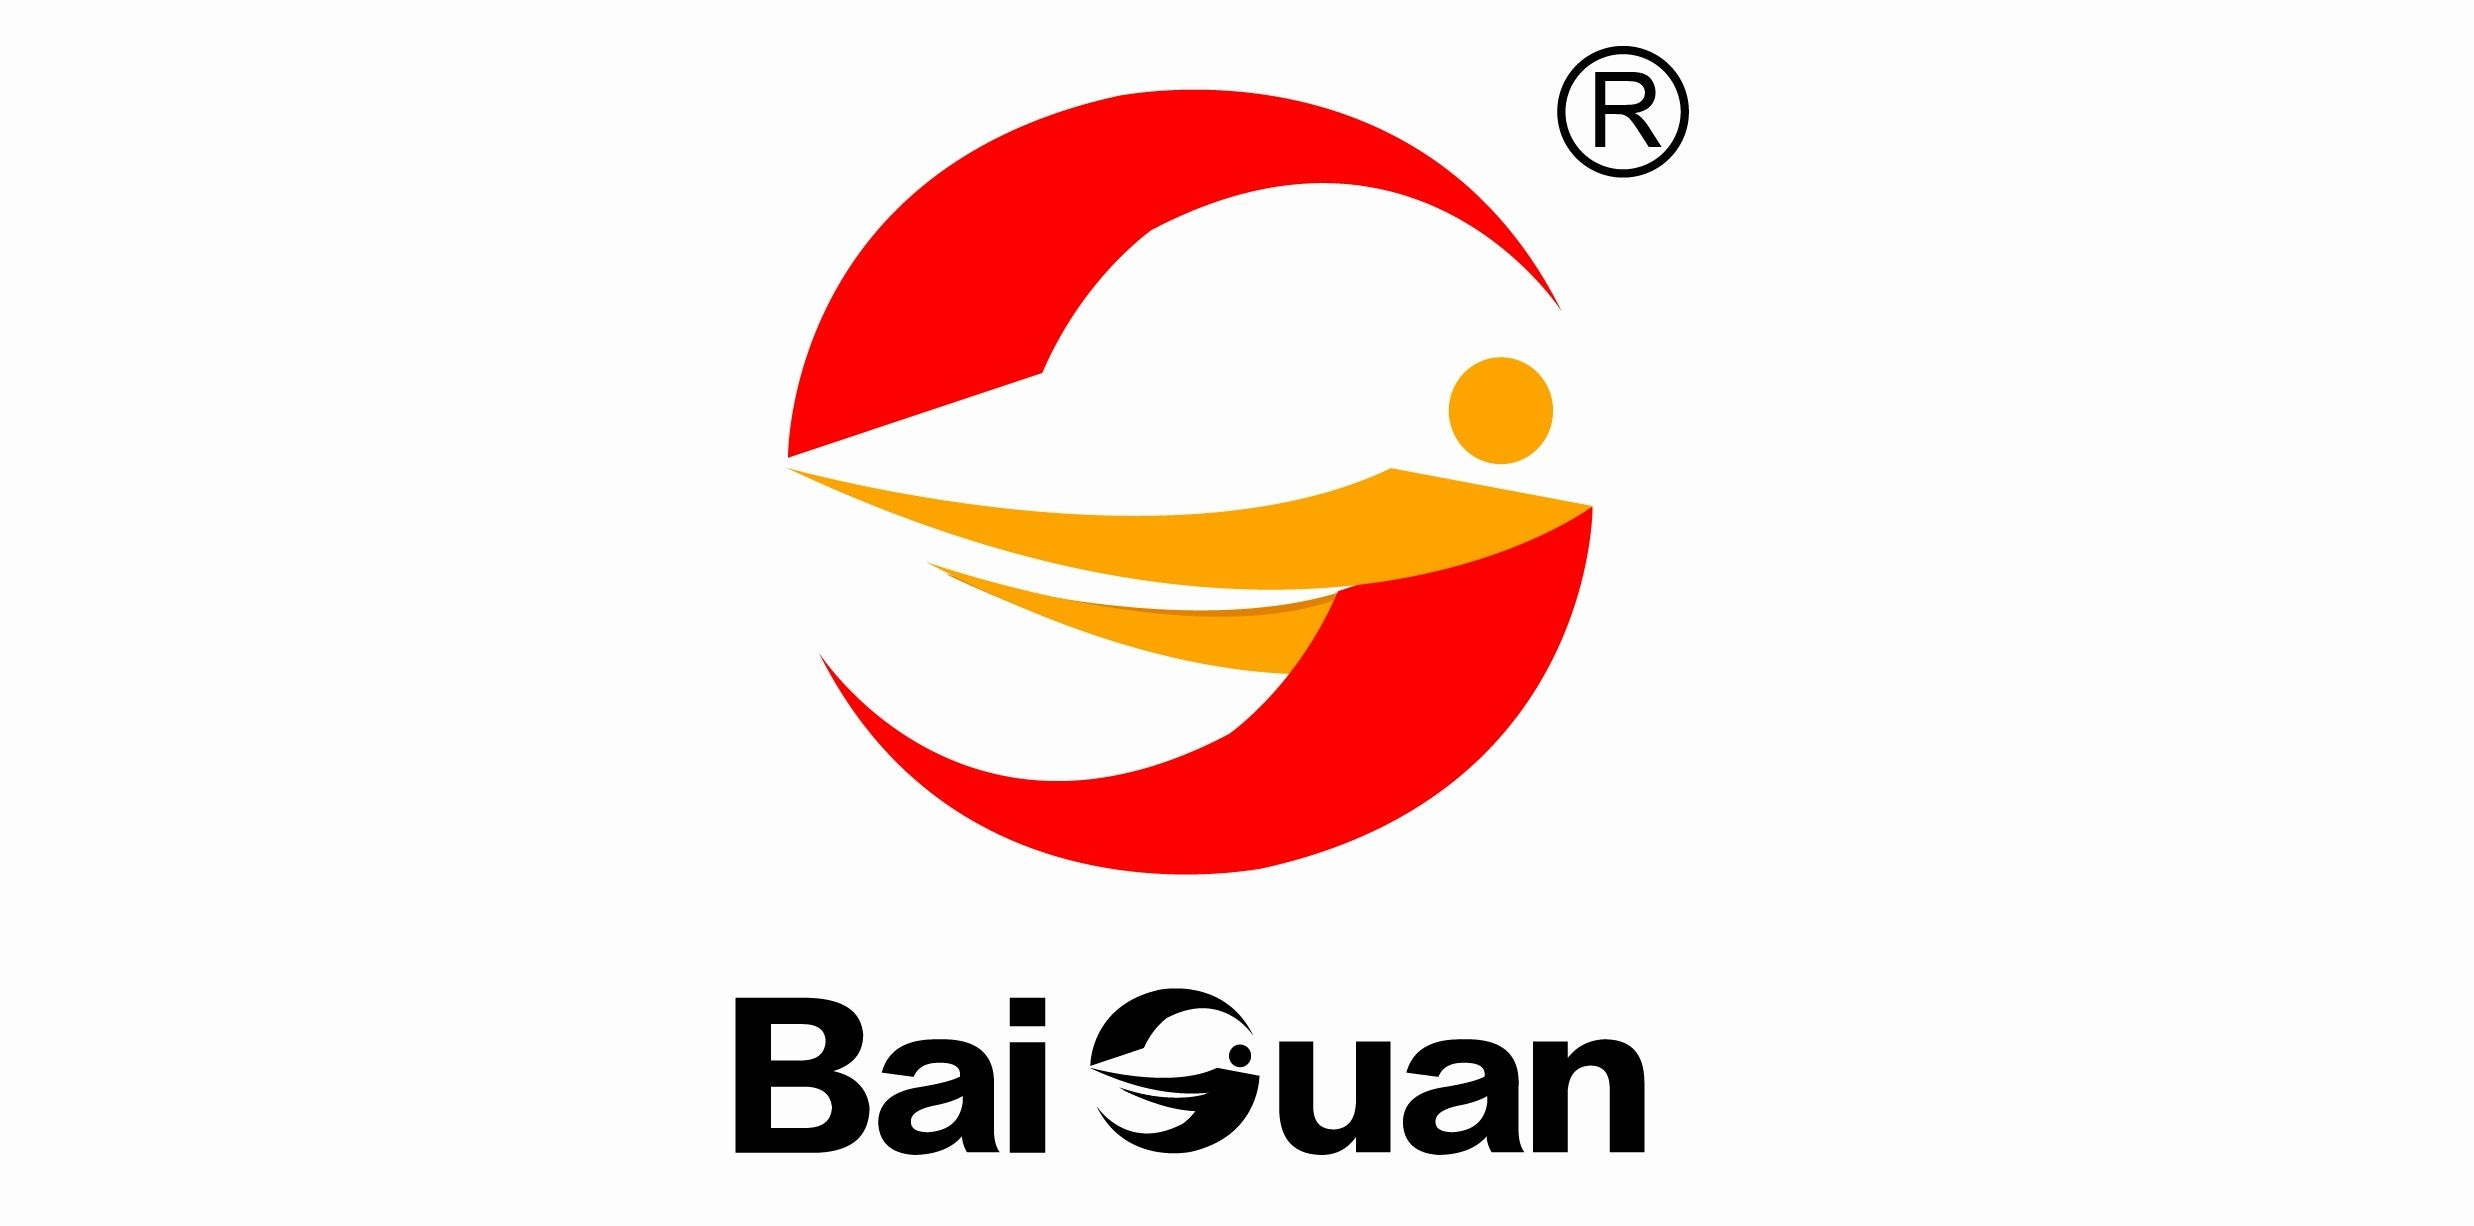 Foshan Baiguan Science and Technology Co., Ltd.